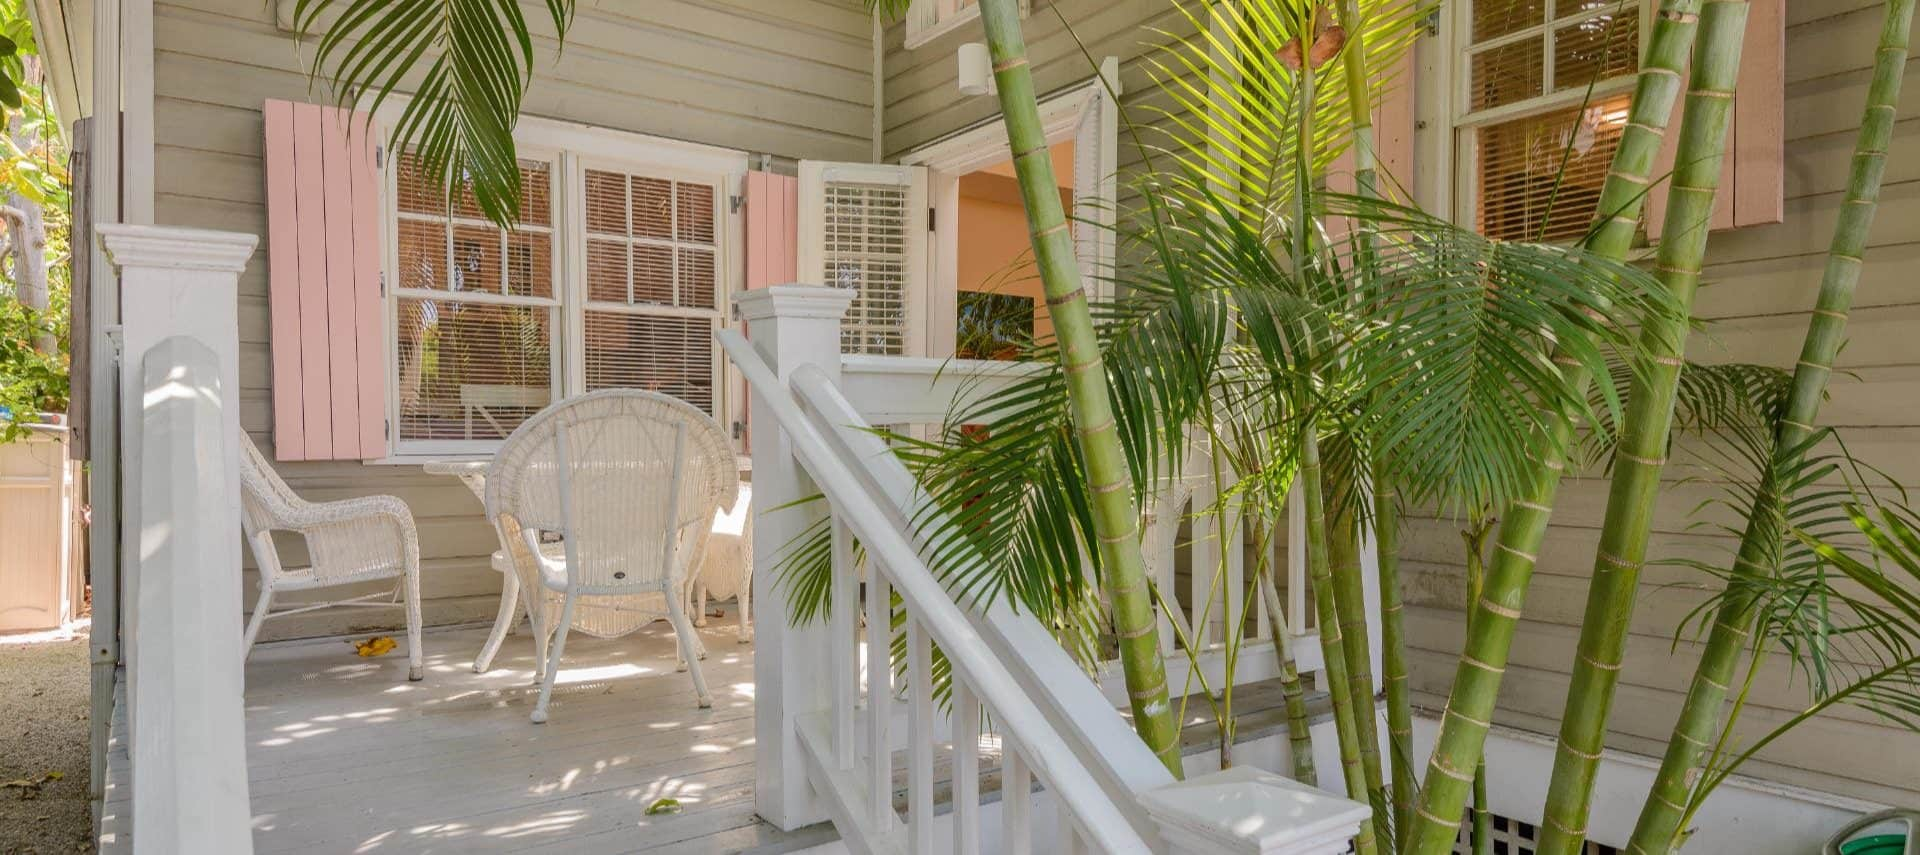 Exterior view of the property painted light tan with back porch painted white, white wicker patio furntiure, and lush greenery